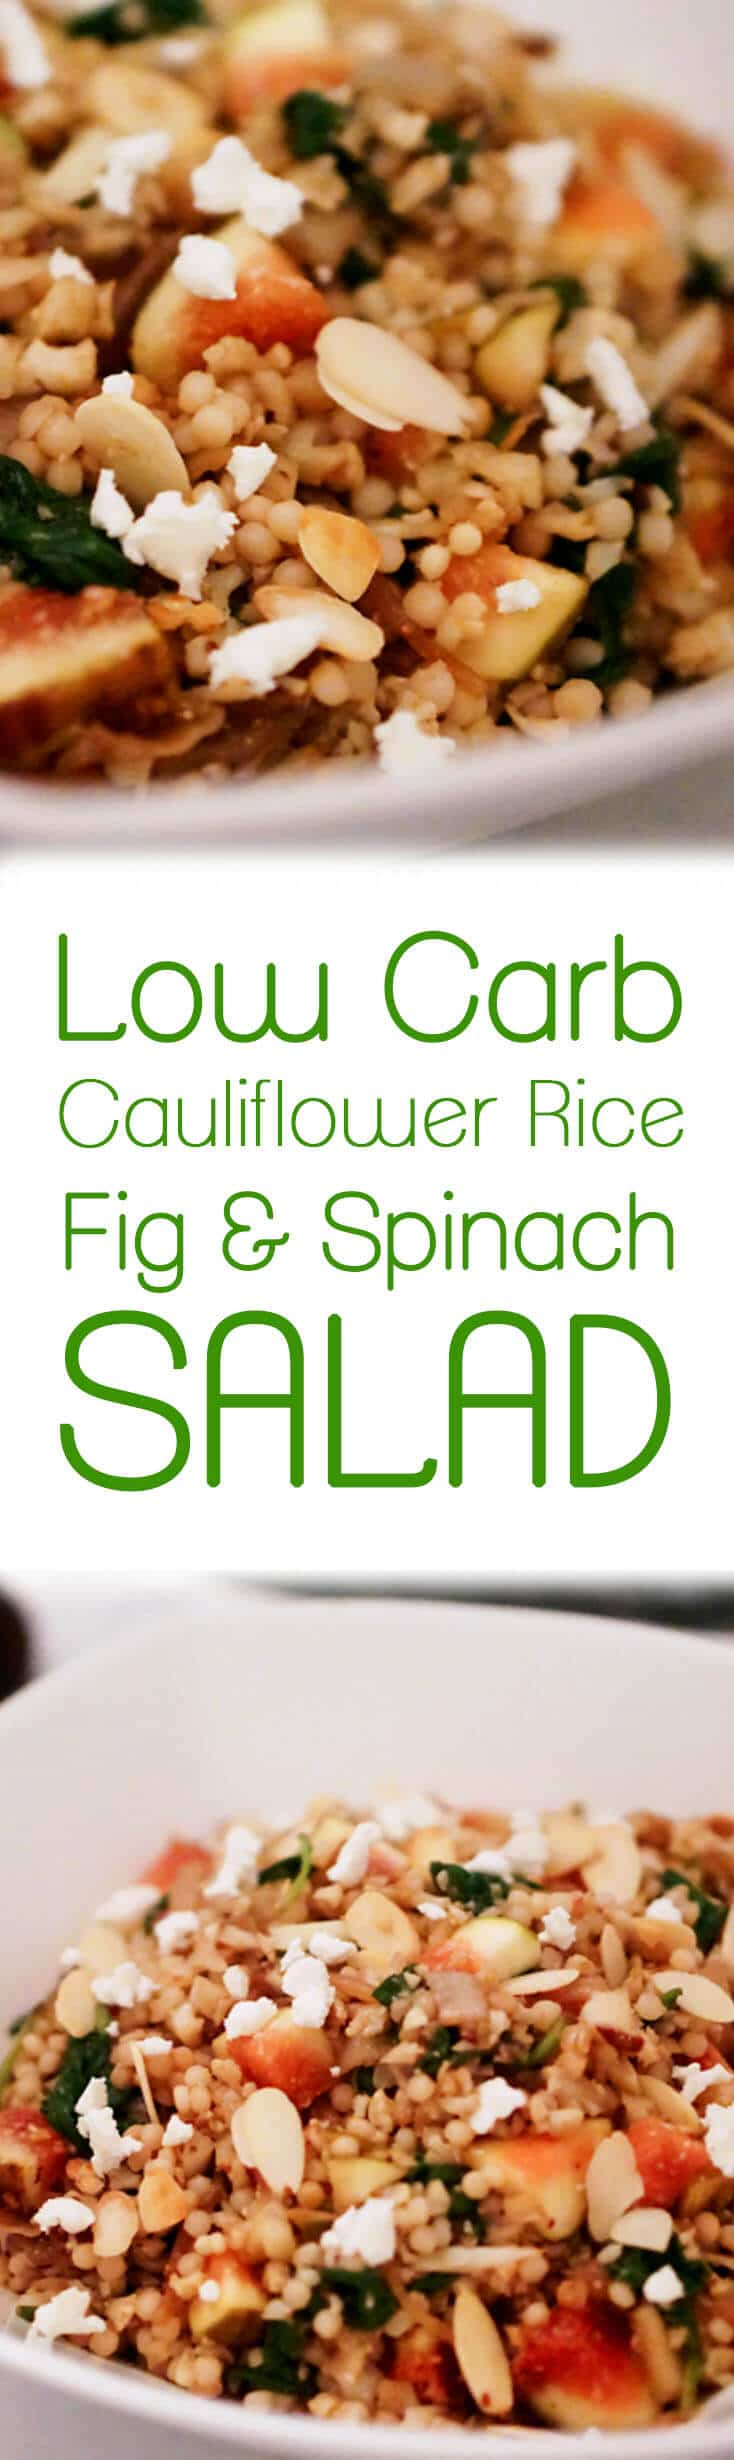 This Low Carb Cauliflower Couscous Salad is light, delicious, and an easy dish to make for the week ahead.